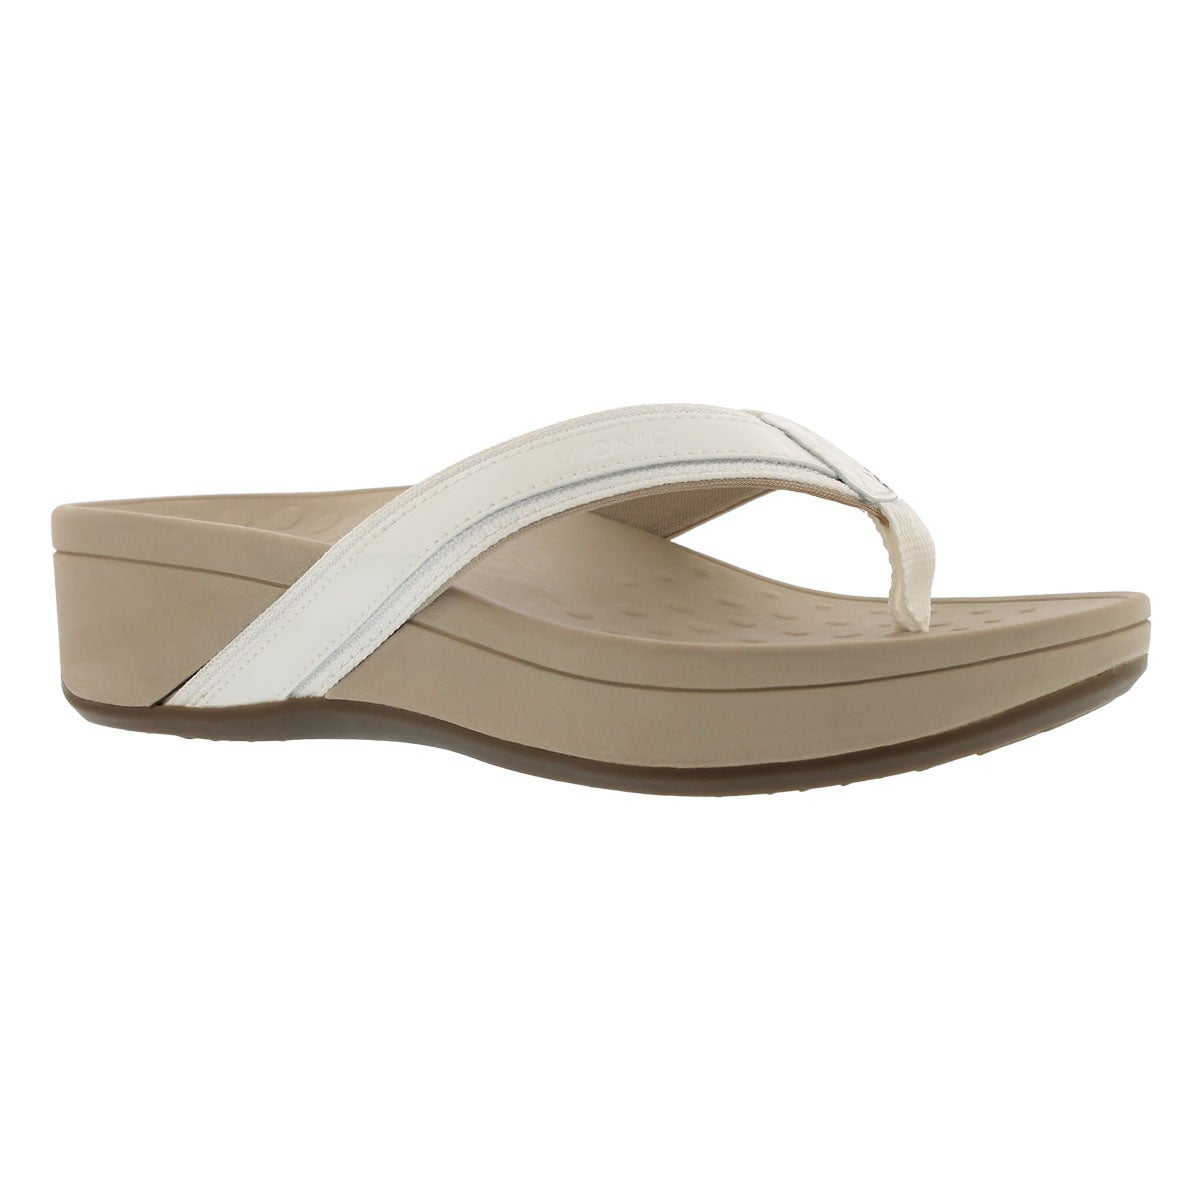 Women's HIGH TIDE white arch support wdg sandals